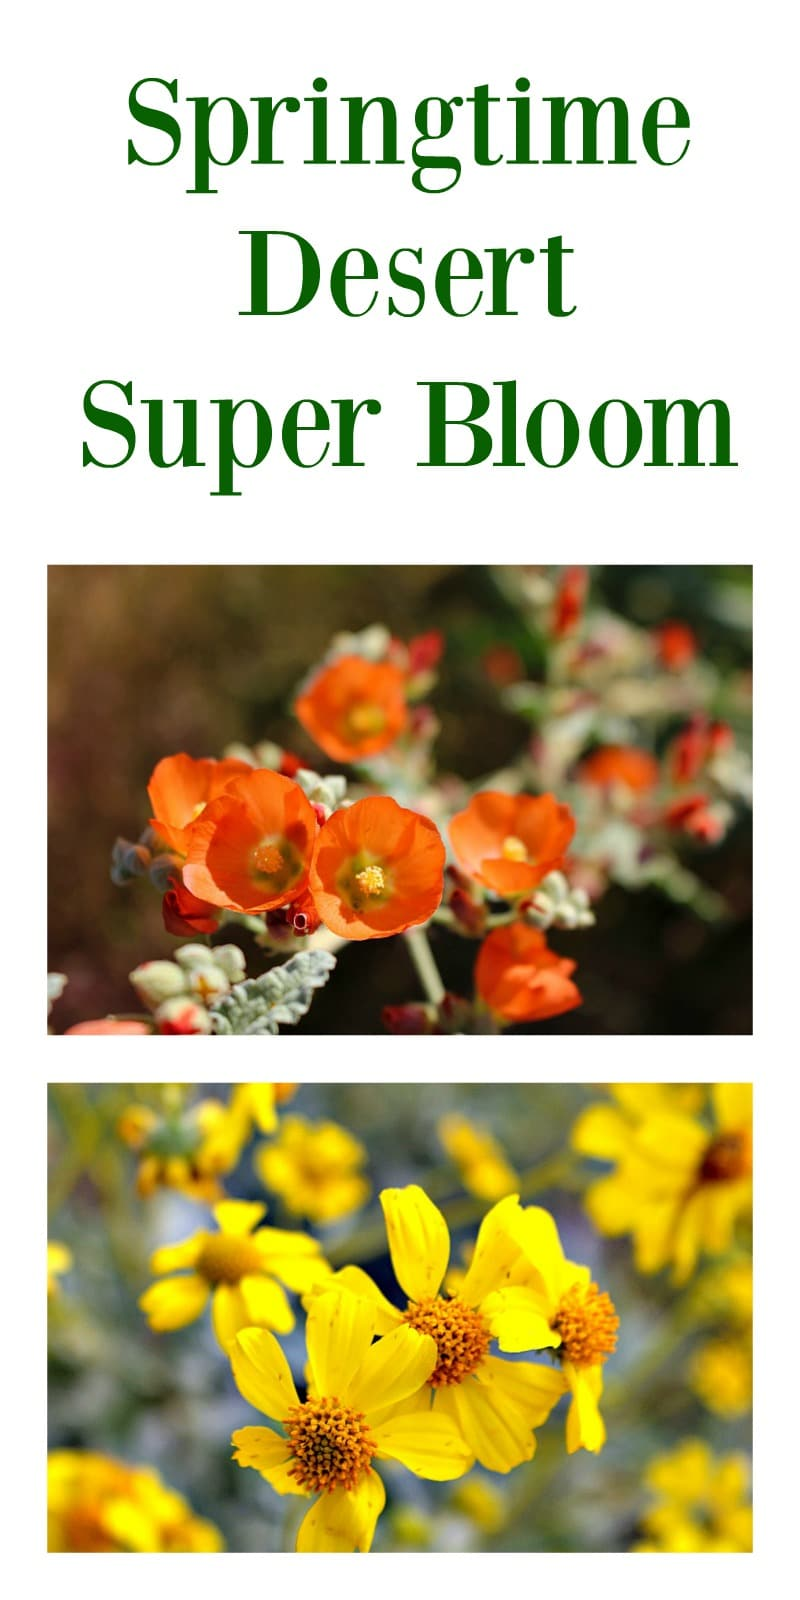 A Kaleidoscope of colors showcases the springtime Desert Super Bloom in Southern California and Arizona.  Come see the super bloom before it is gone!